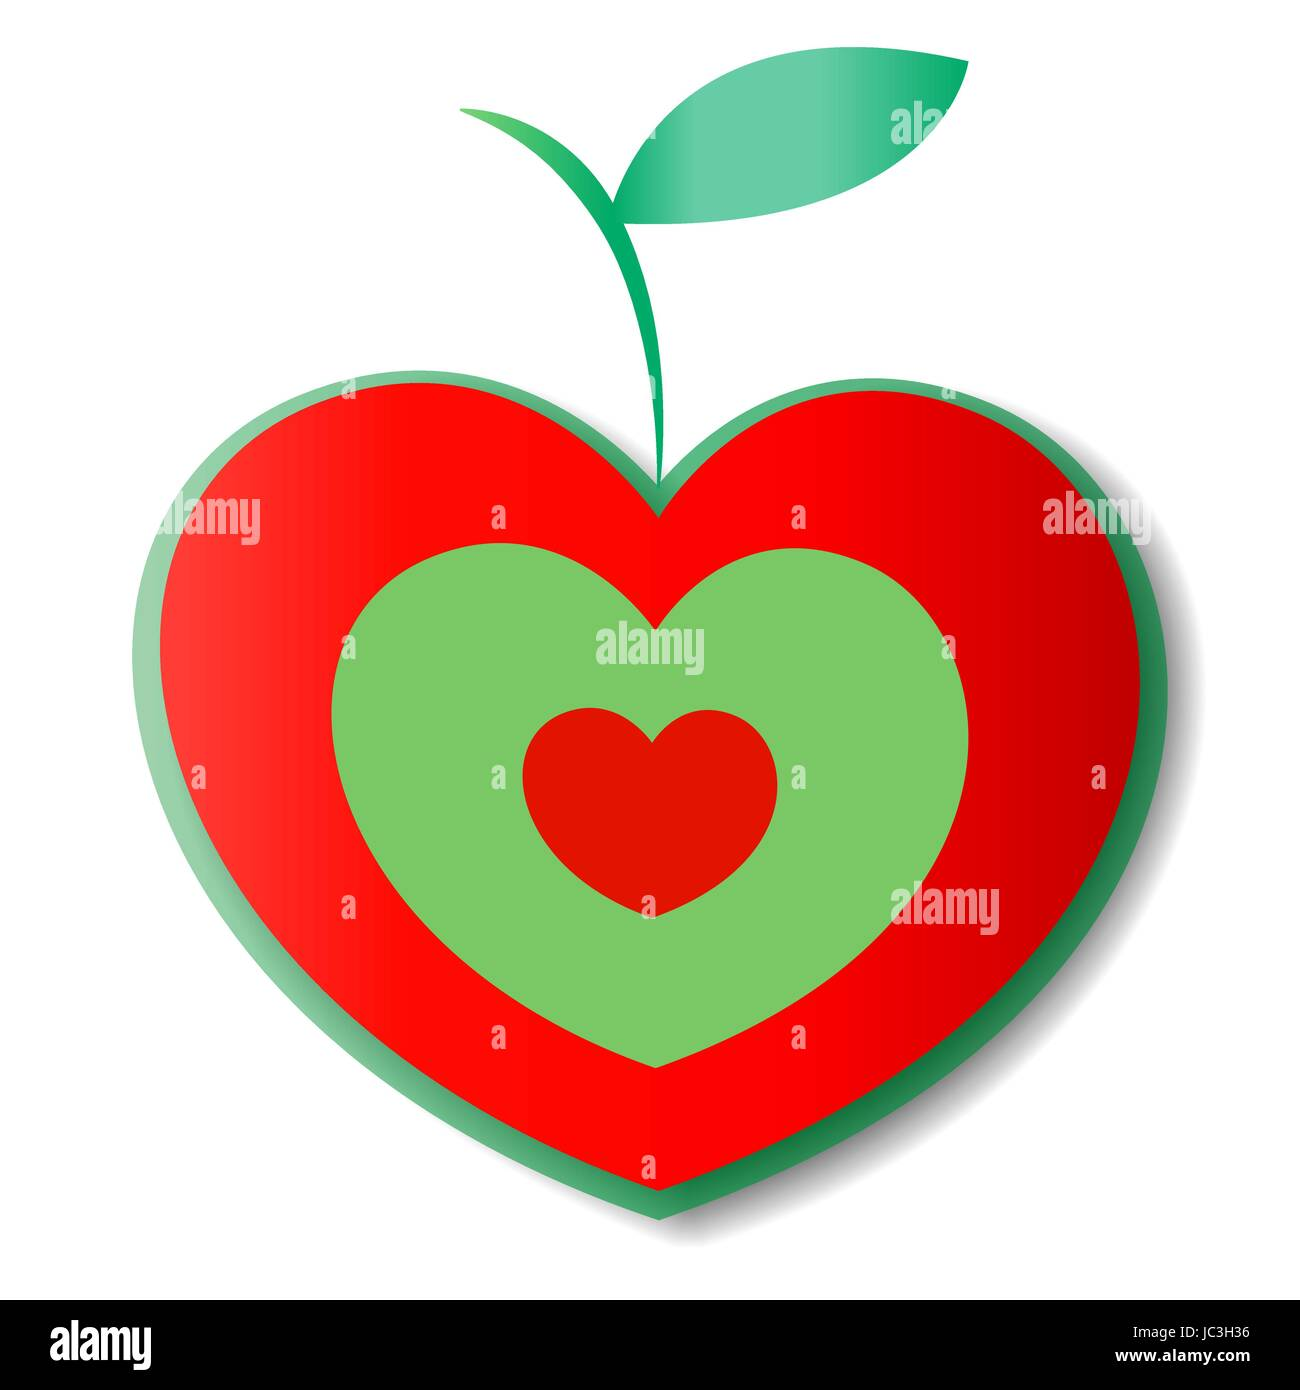 Natural apple logo heart isolated on white love symbol target natural apple logo heart isolated on white love symbol target buycottarizona Image collections